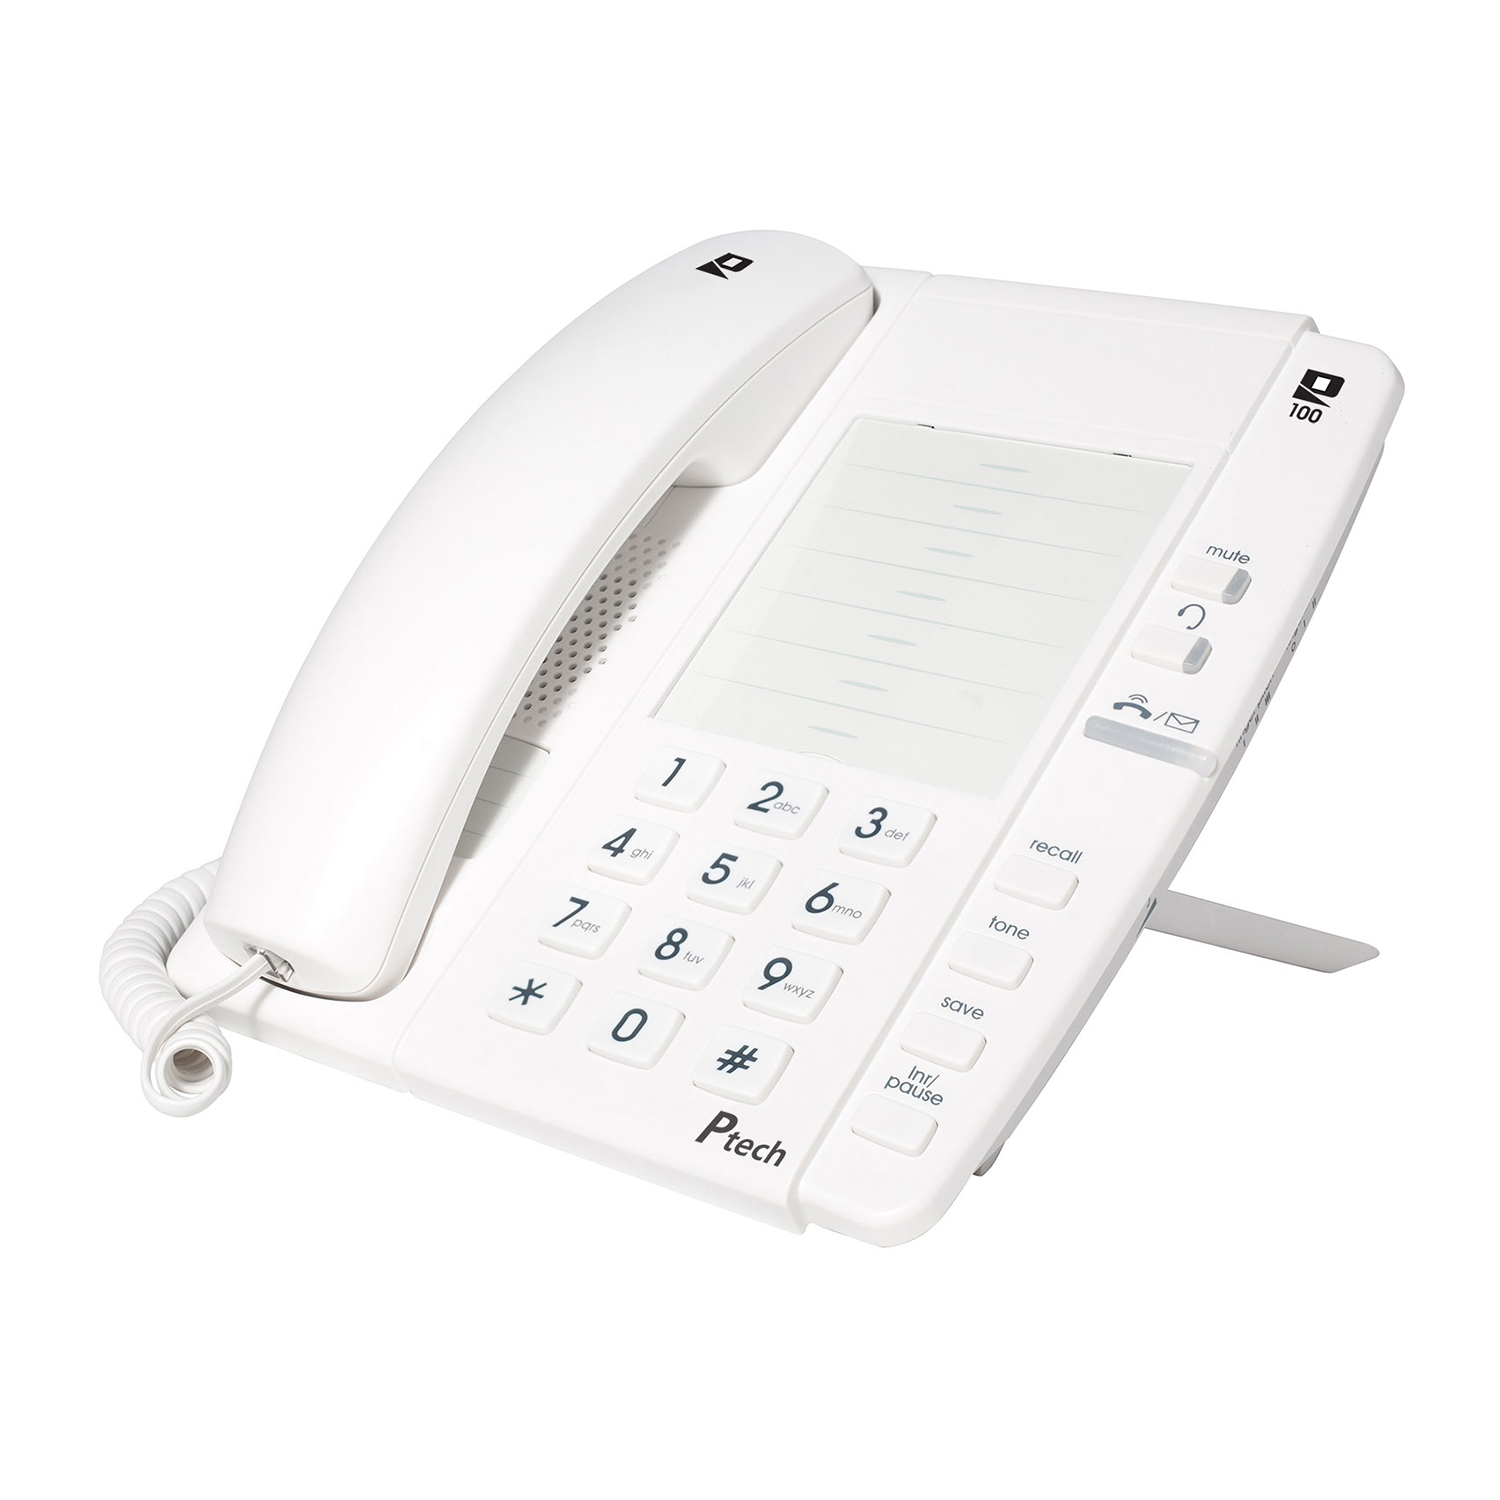 Ptech P100 White Telephone